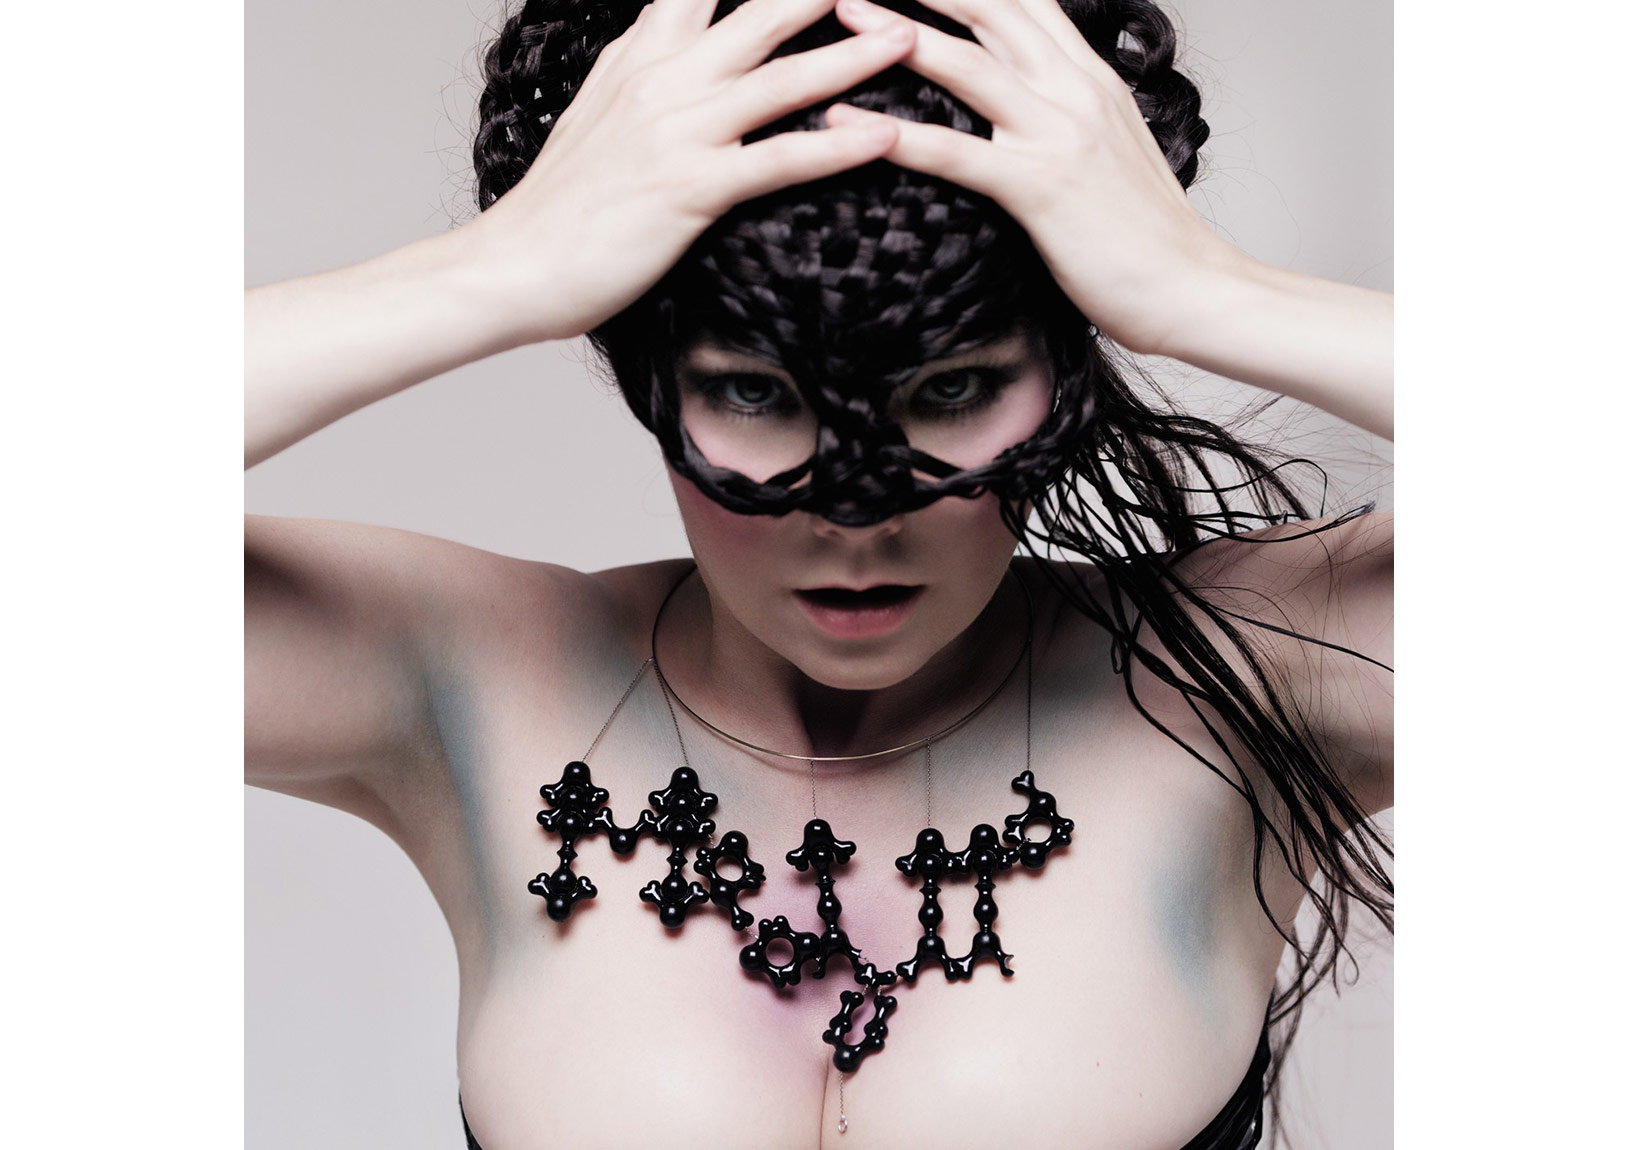 Björk, Medulla, 2004Credit: Photography by Inez van Lamsweerde & Vinoodh Matadin. Image courtesy of Wellhart Ltd & One Little Indian